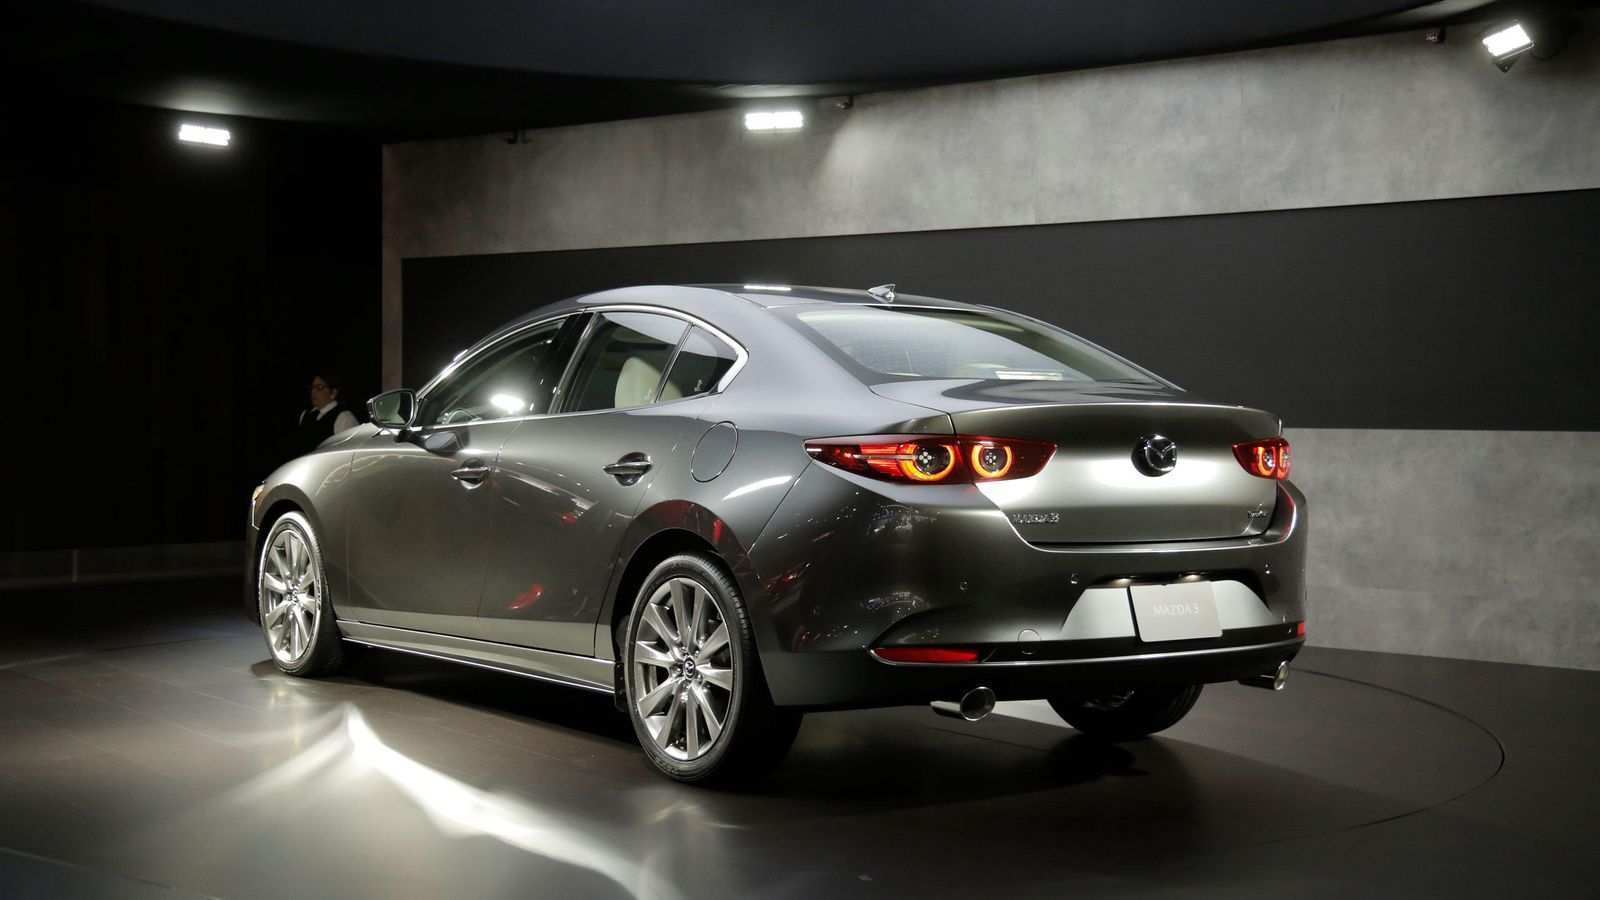 19 Great 2020 Mazda 3 Sedan Wallpaper with 2020 Mazda 3 Sedan